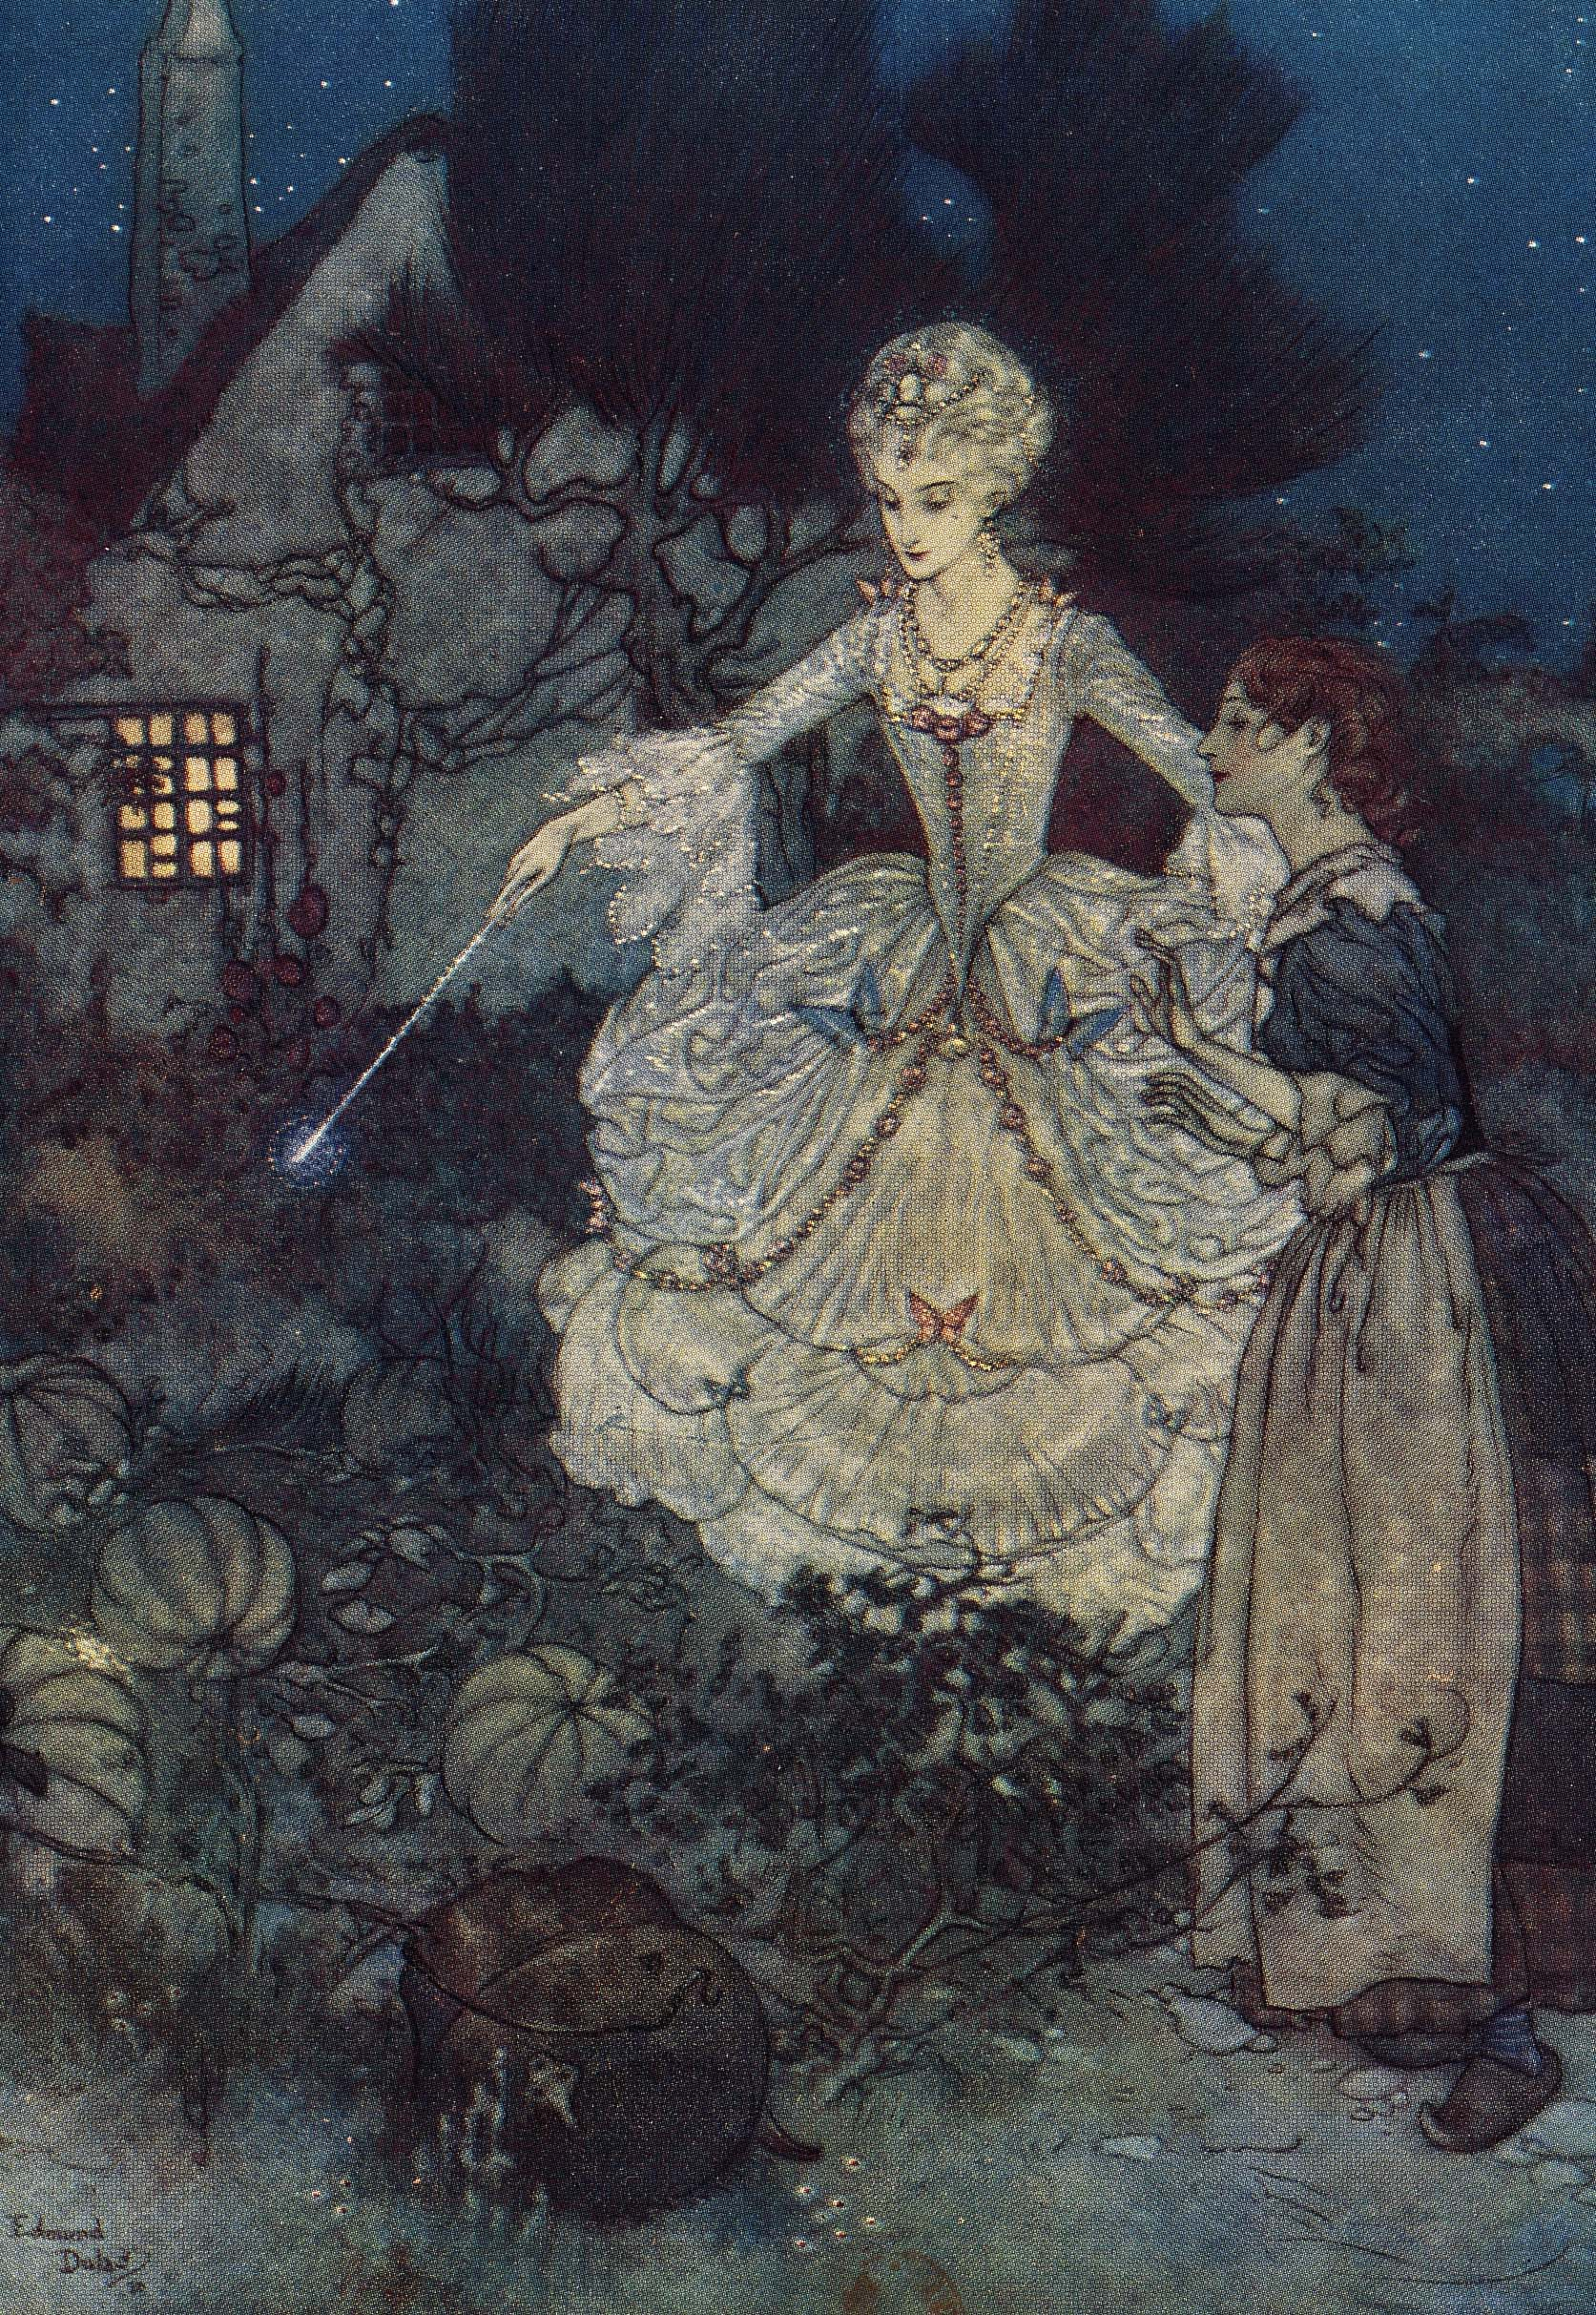 Cinderella and her fairy-godmother in the vegetable garden, Edmond Dulac (1915)